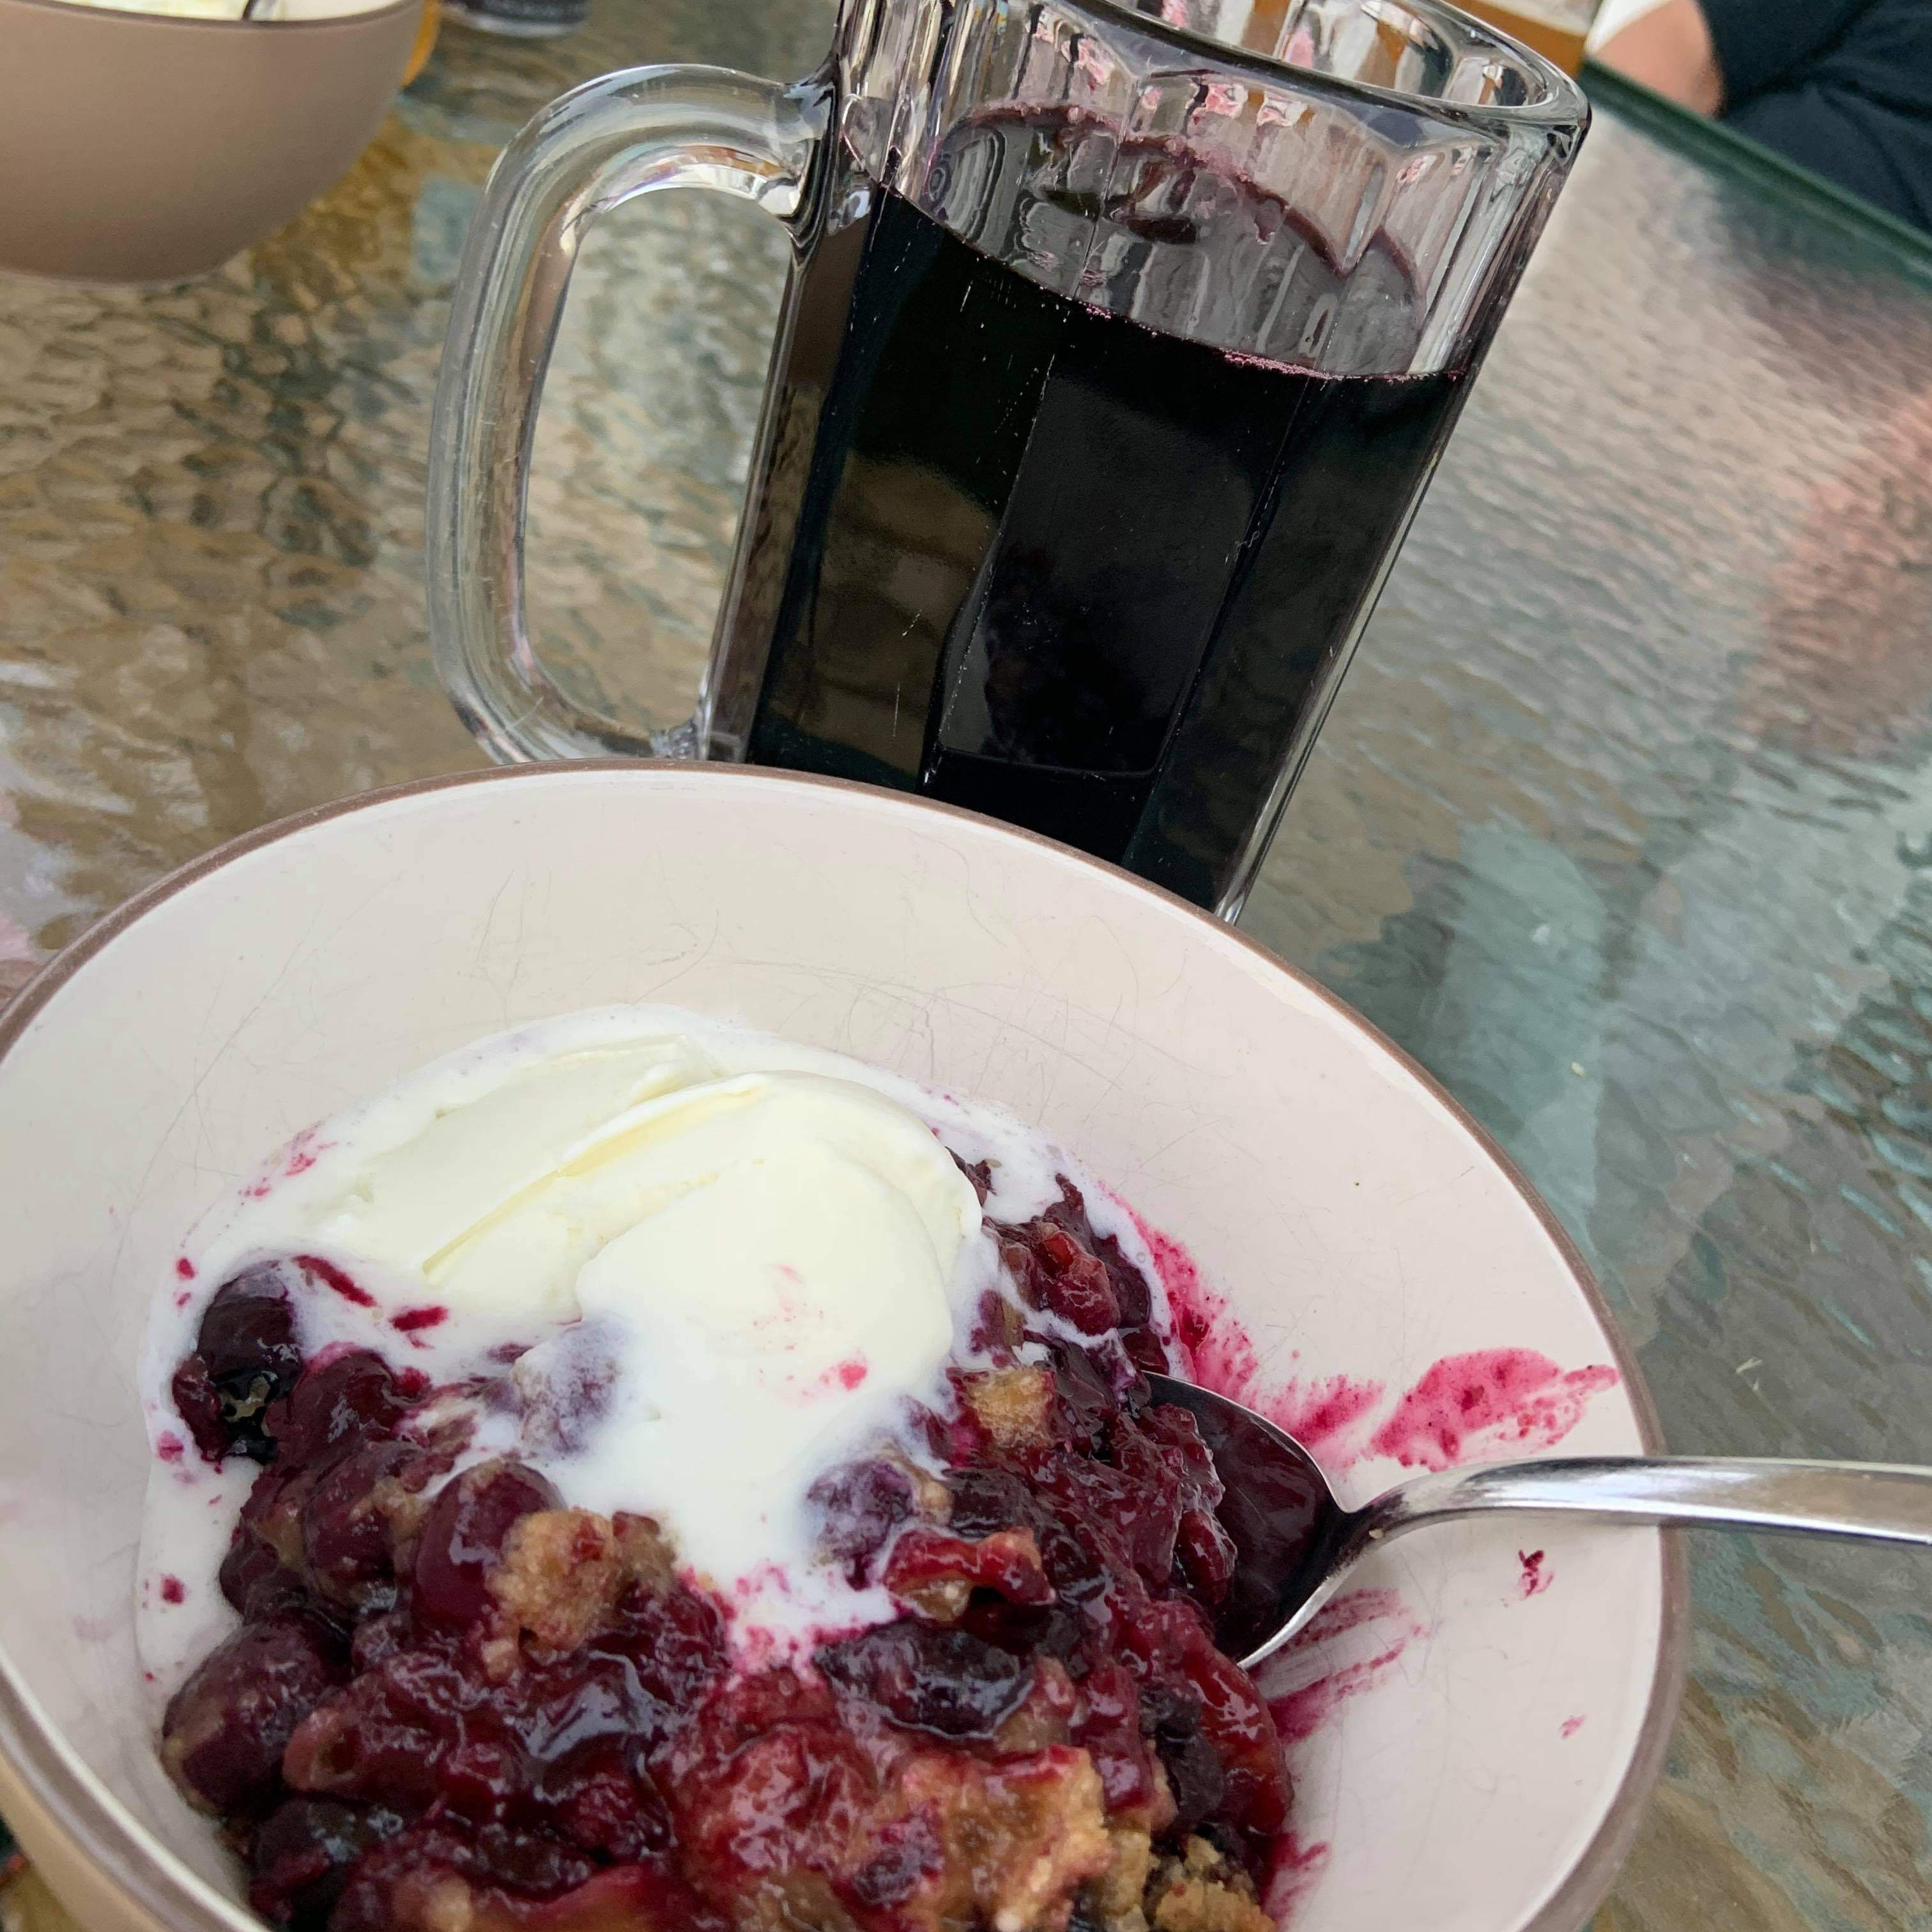 Classic American Blueberry Crisp cathy selby